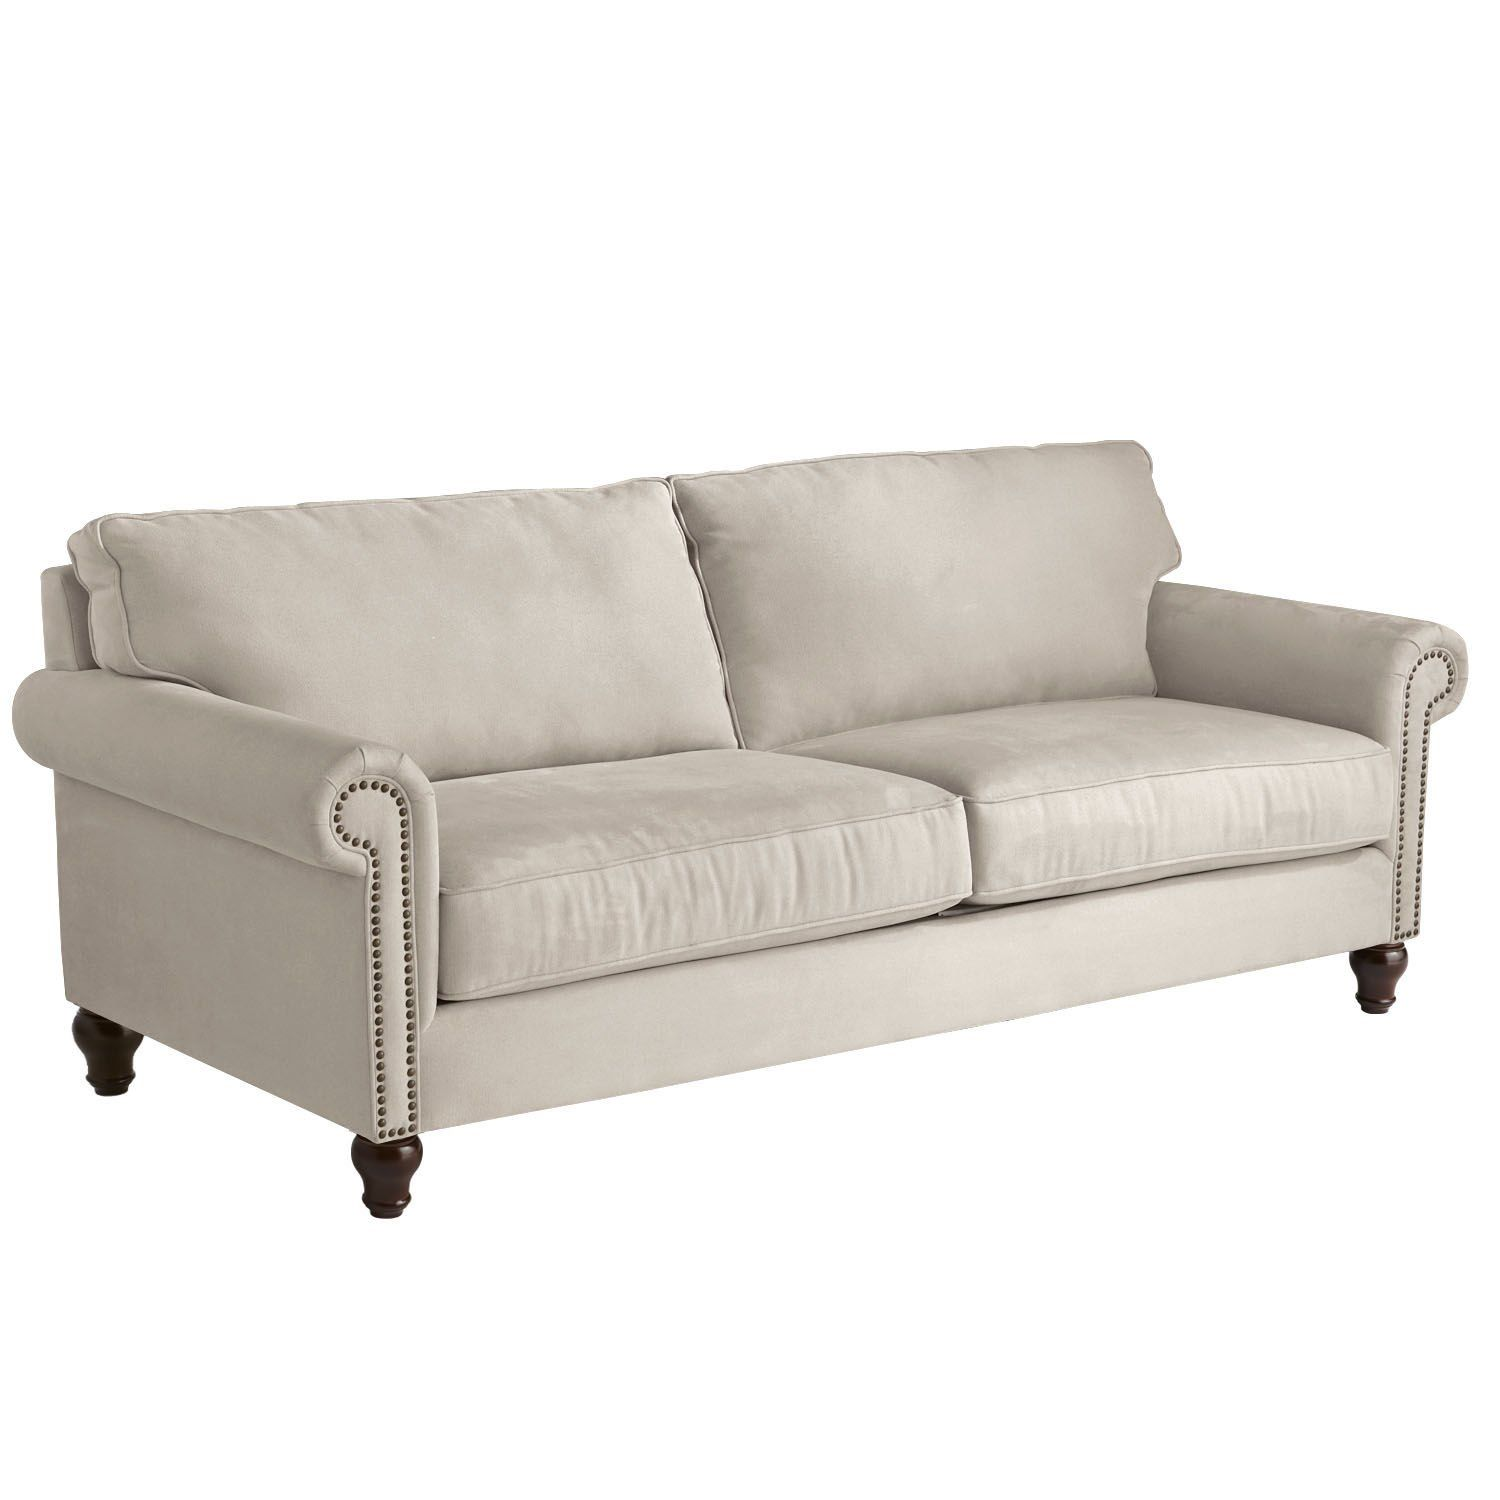 Sofa Sleeper Alton Ecru Pier 1 Sears Com Mx Me Entiende